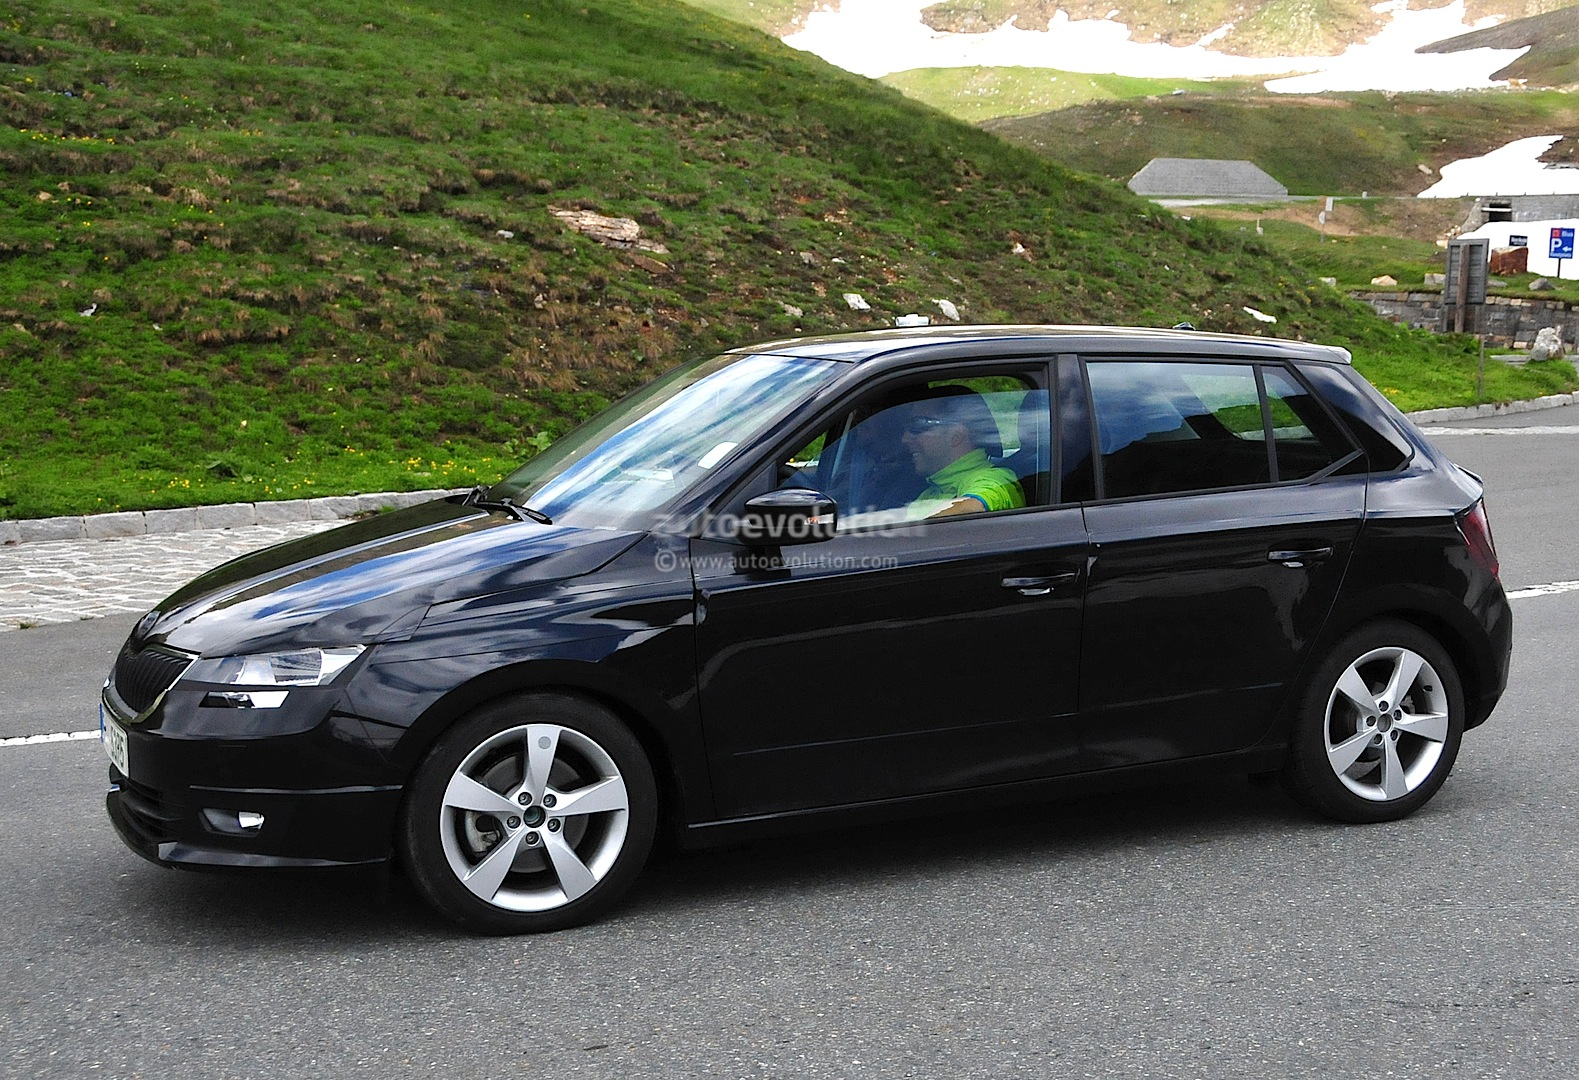 All-New Skoda Fabia Undergoing Testing in the Alps ...